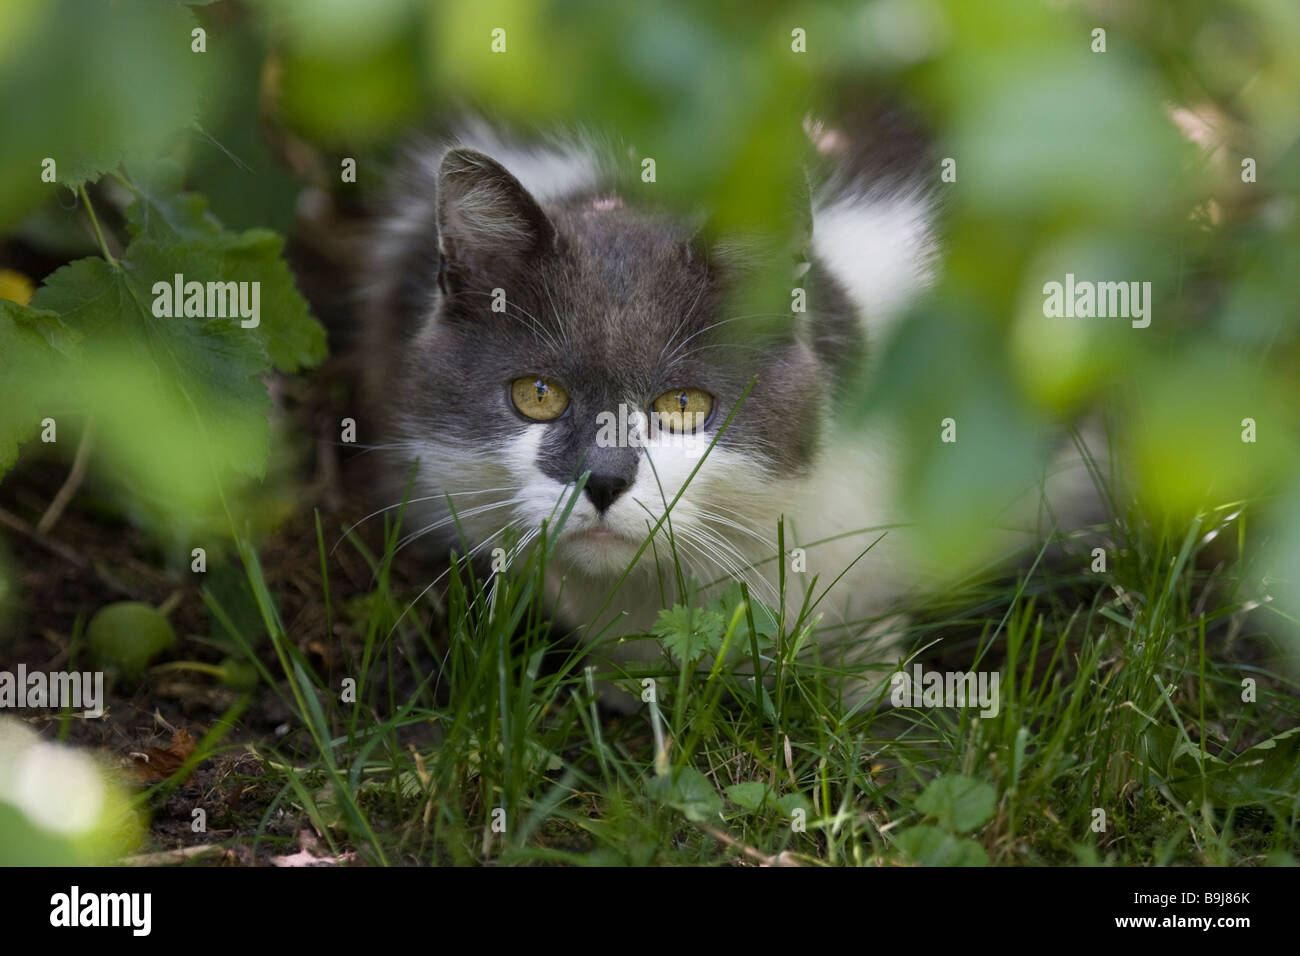 Grey and white domestic cat hiding behind green branches, ready to pounce - Stock Image